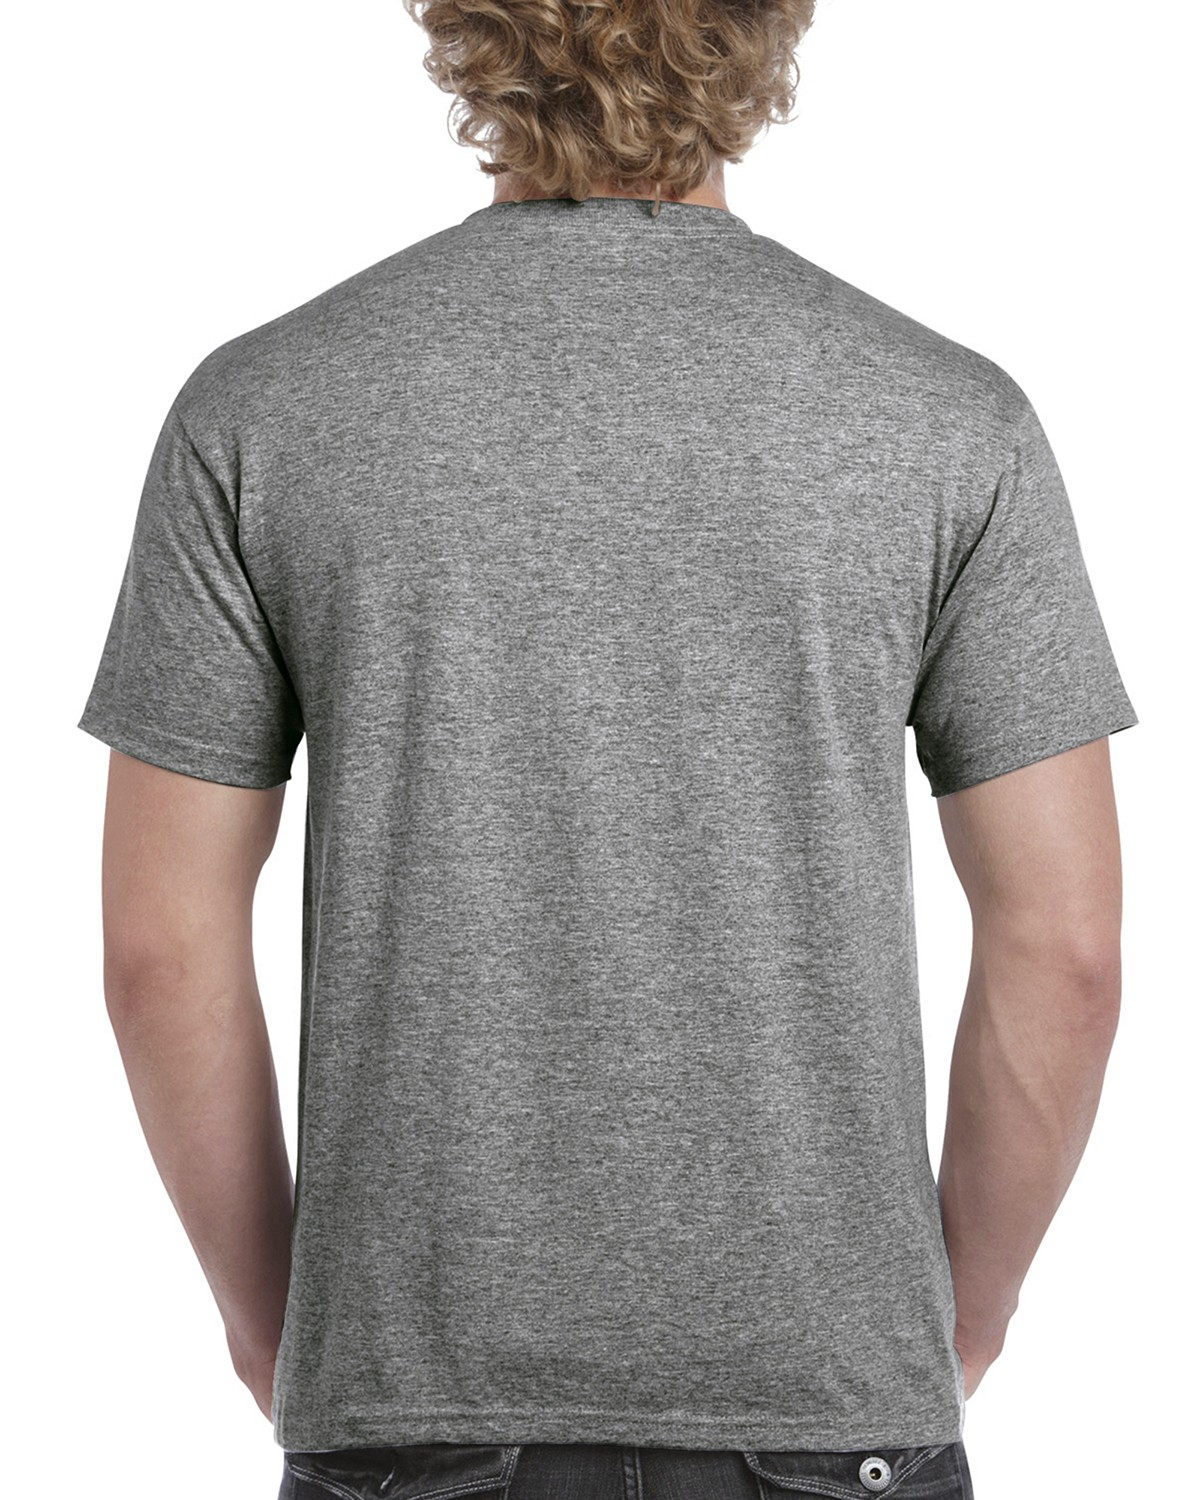 H000 Gildan GRAPHITE HEATHER